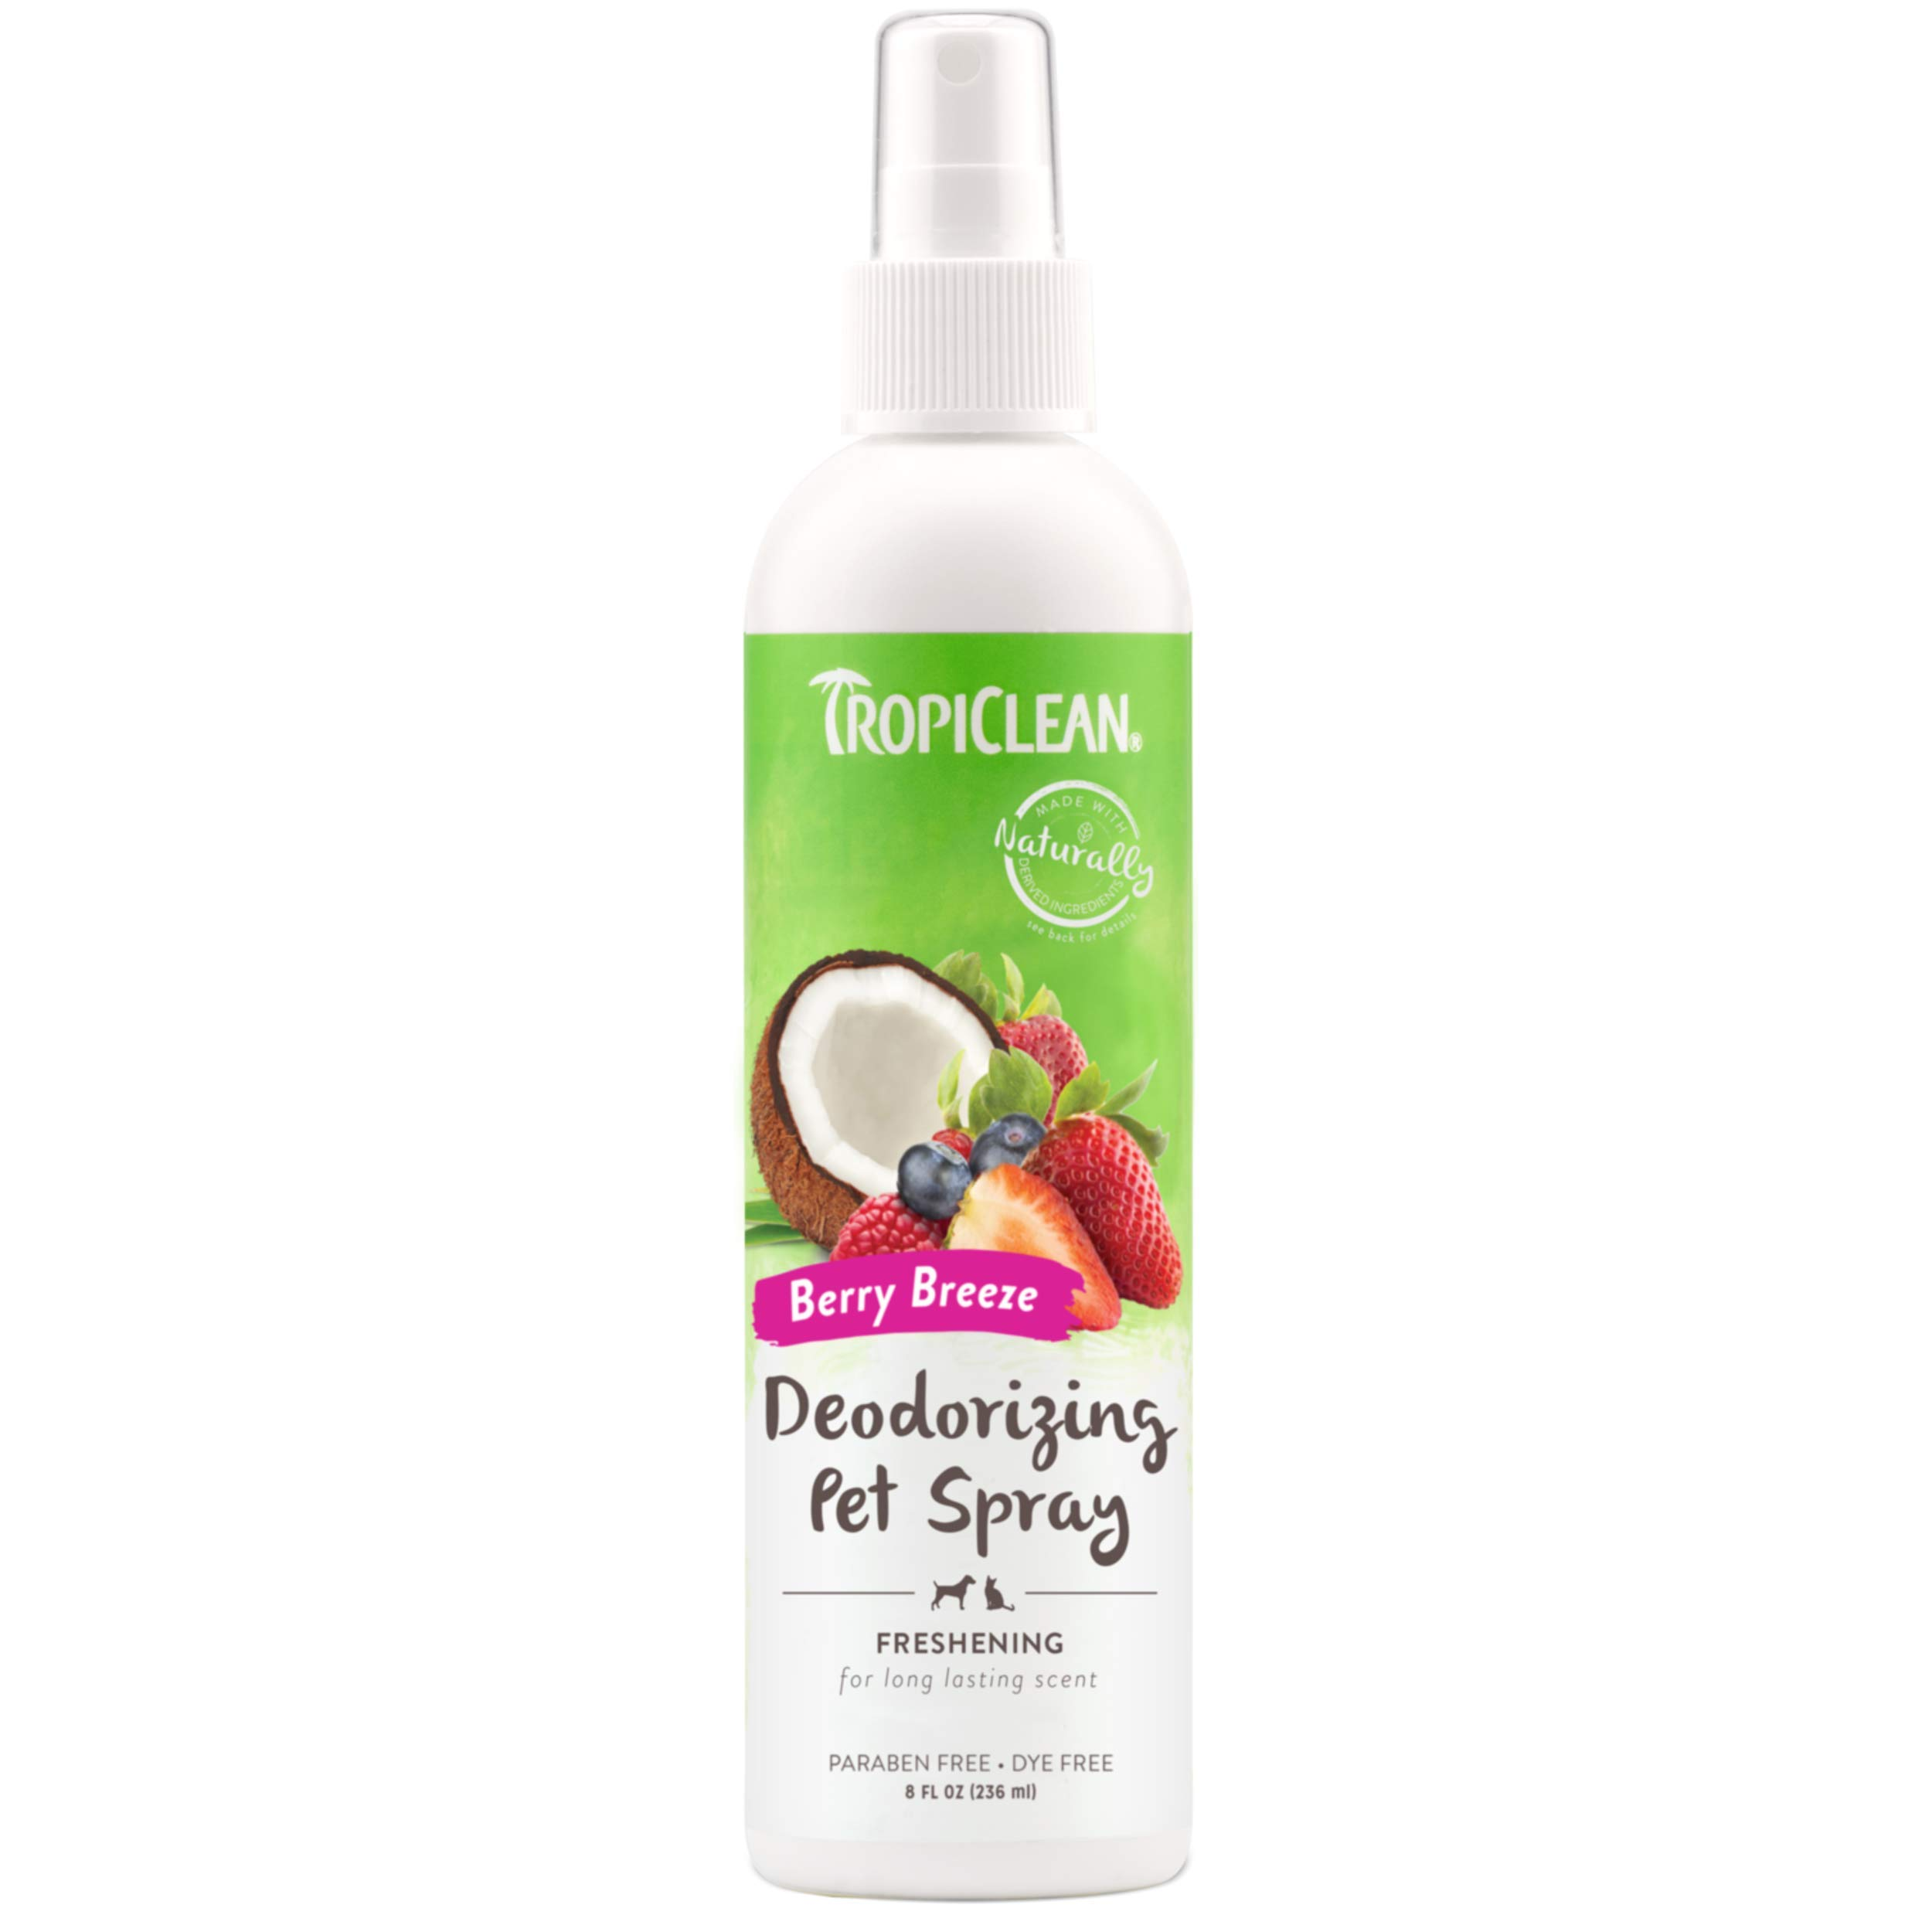 TropiClean Deodorizing Sprays for Pets, Made in USA - Made in USA - Helps Break Down Odors to Effectively Deodorize Dogs and Cats, Paraben Free, Dye Free